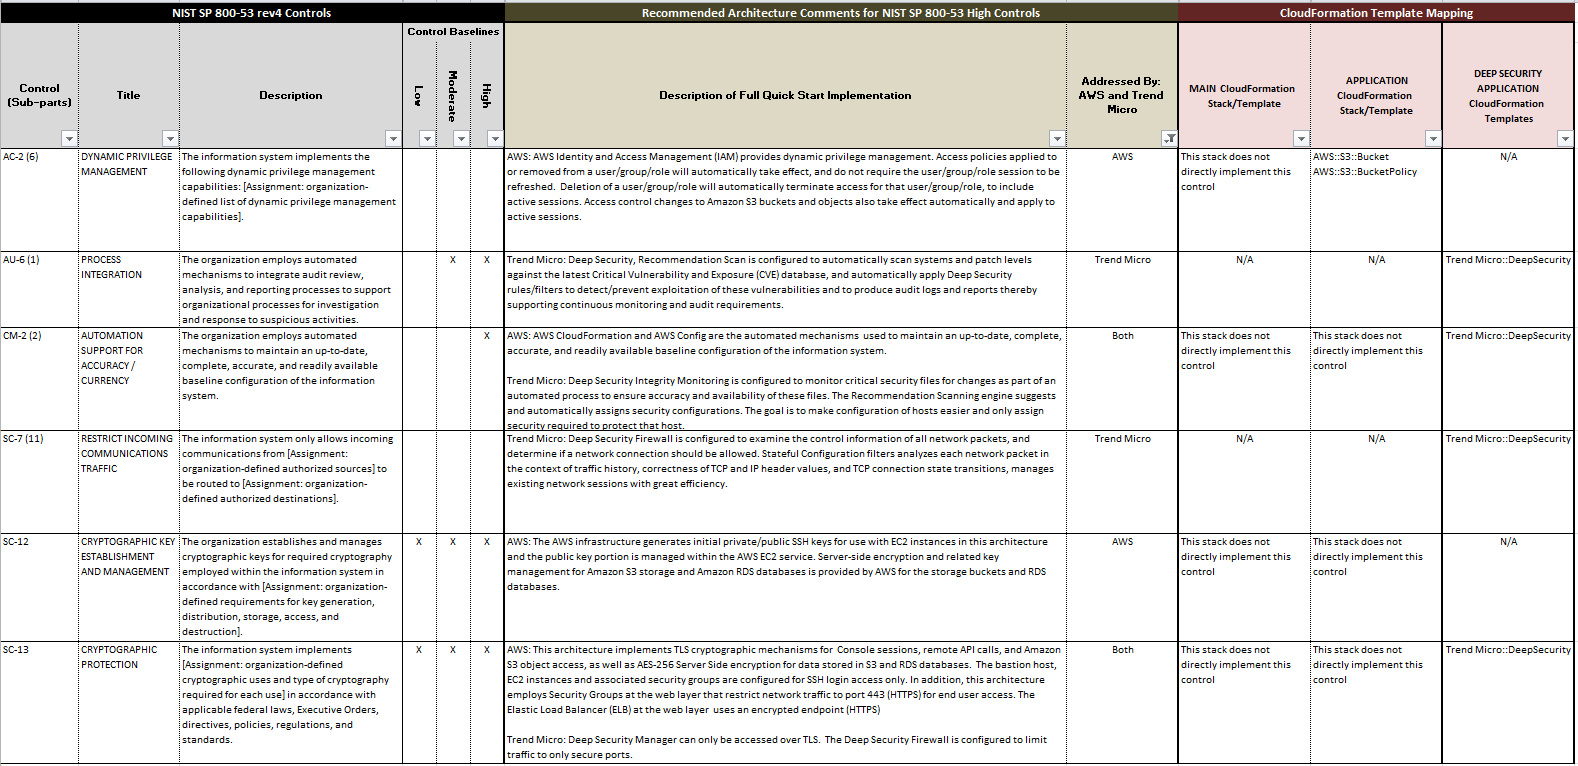 Nist Cybersecurity Framework Spreadsheet Intended For Nist Cybersecurity Framework Spreadsheet – Spreadsheet Collections